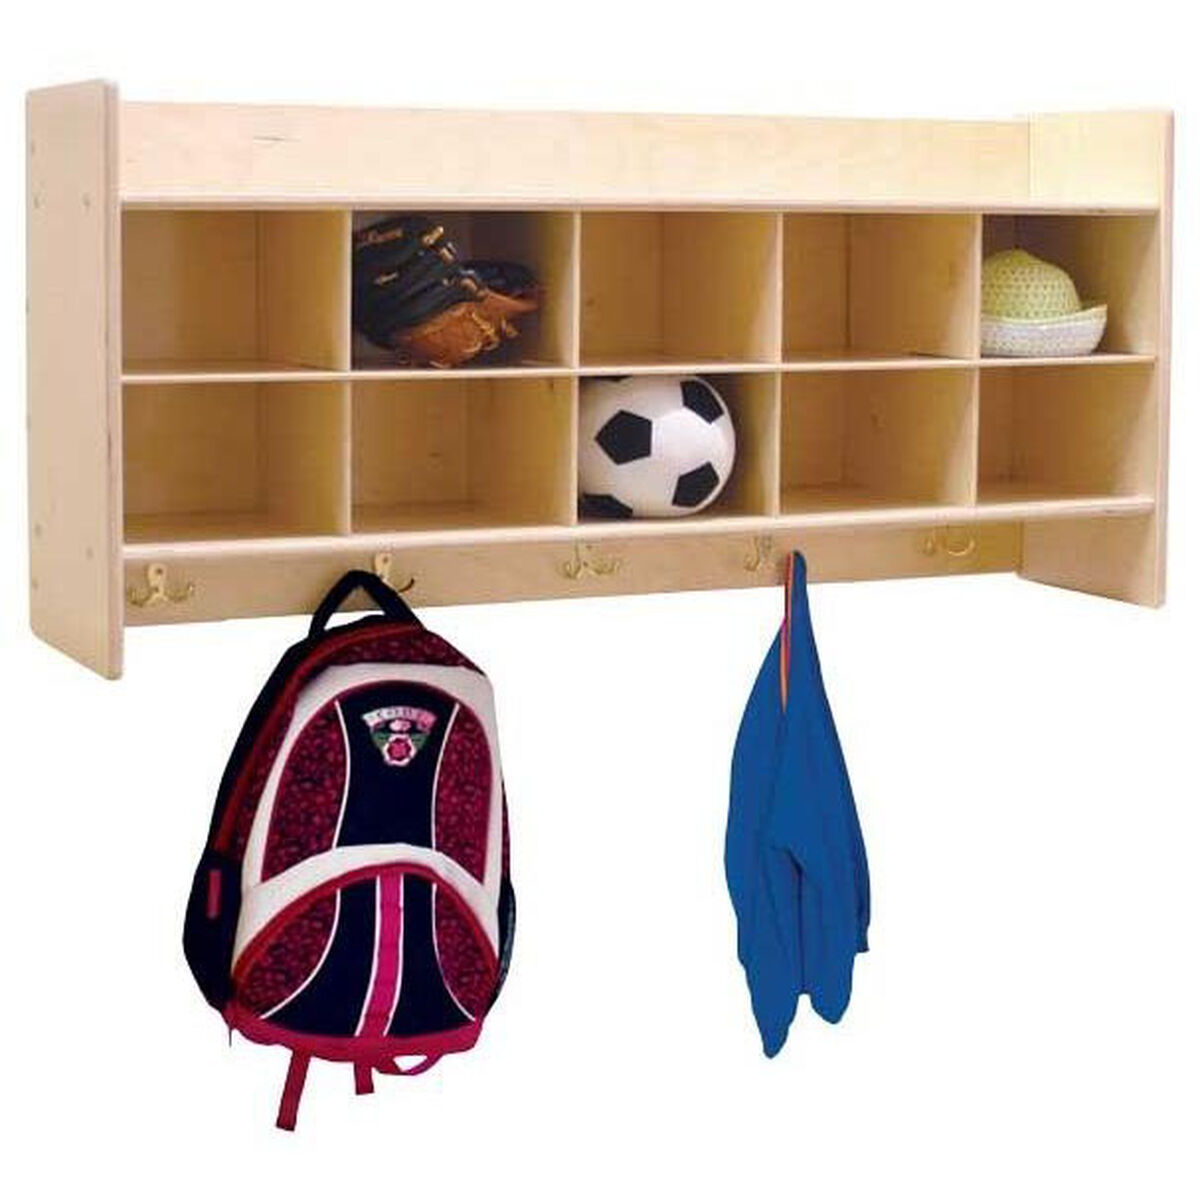 Our Wall Mountable Baltic Birch Plywood Coat Locker Cubby Storage Unit With Tuff Gloss